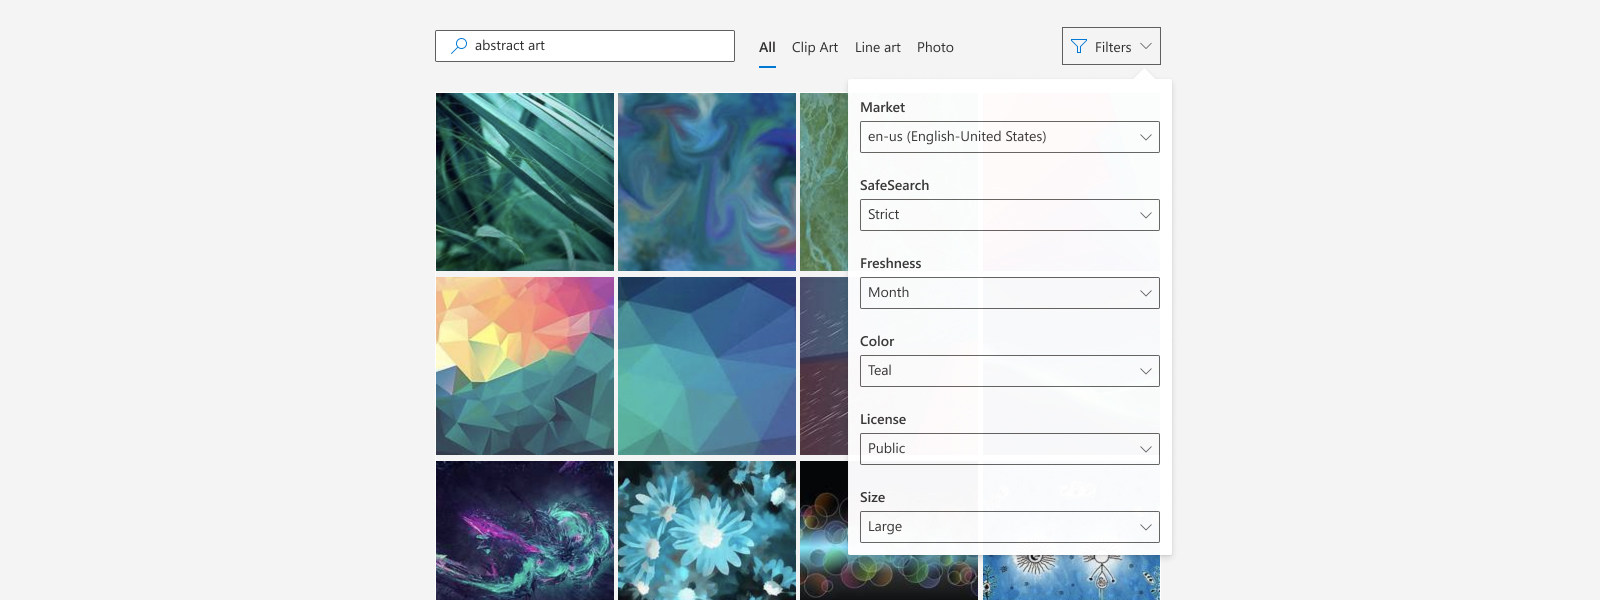 Illustration of using different filters to refine Image Search results in an application.